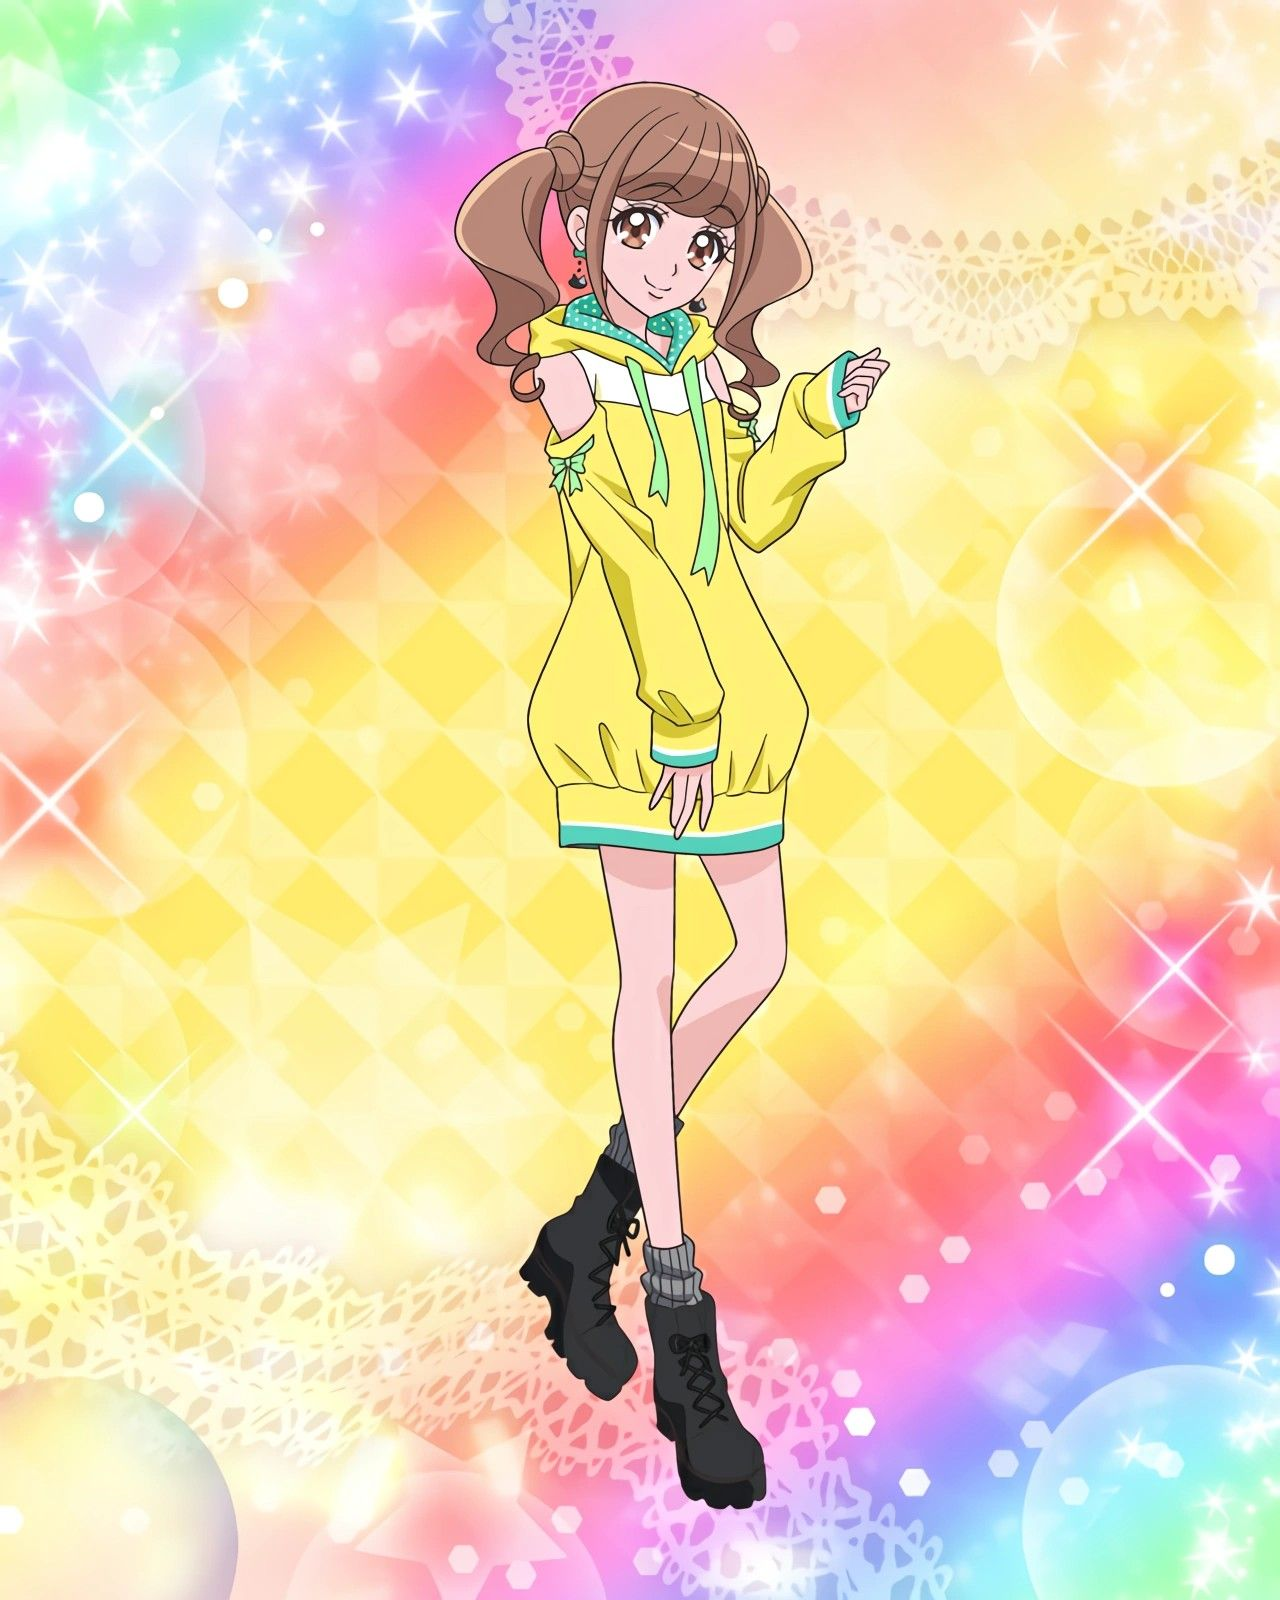 Pin by Bryan Magallanes on プリキュアシリーズ(Precure Series) in